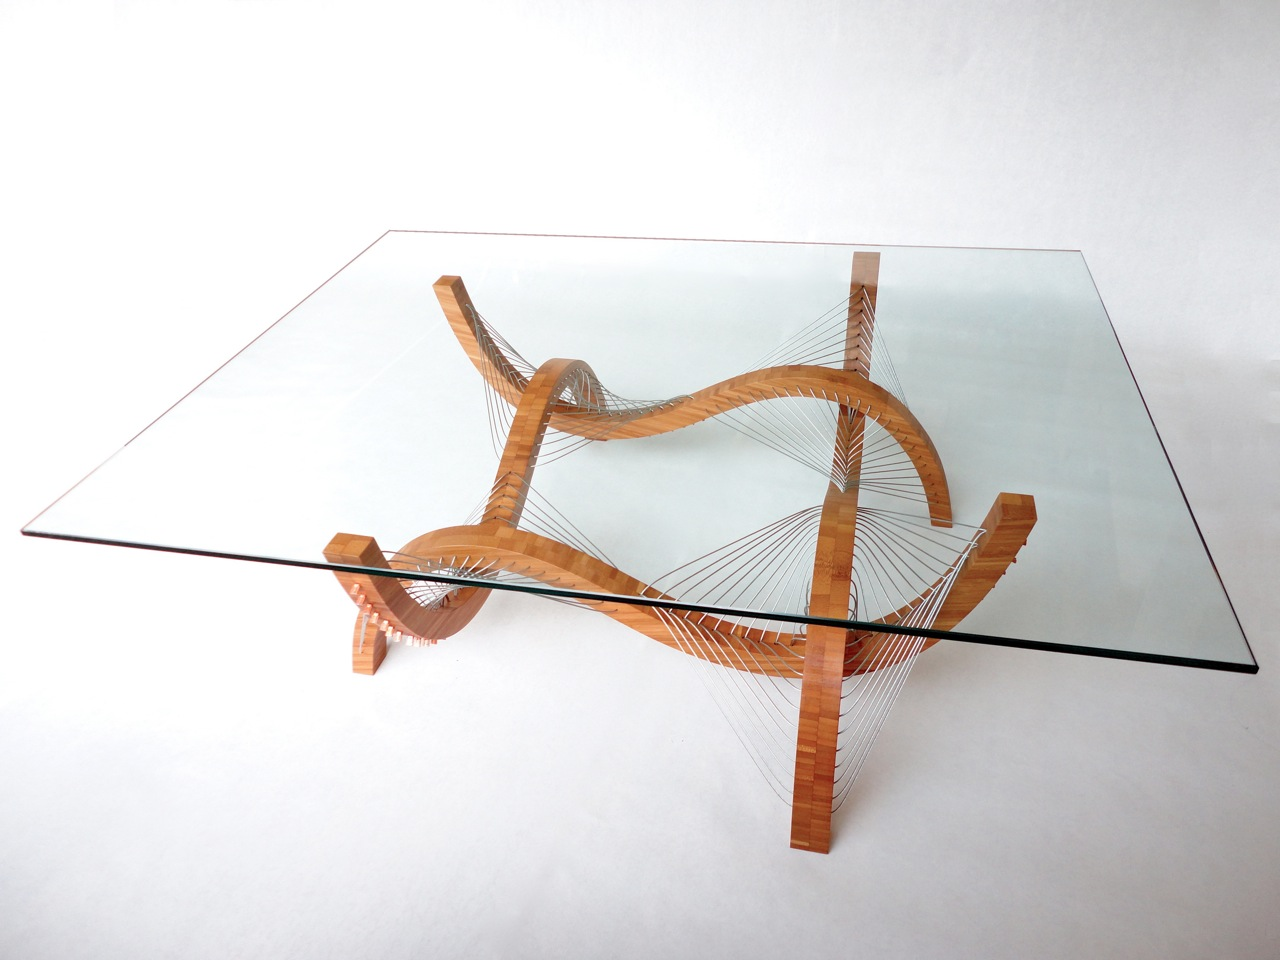 Awesome furniture are held together only by tension  Table